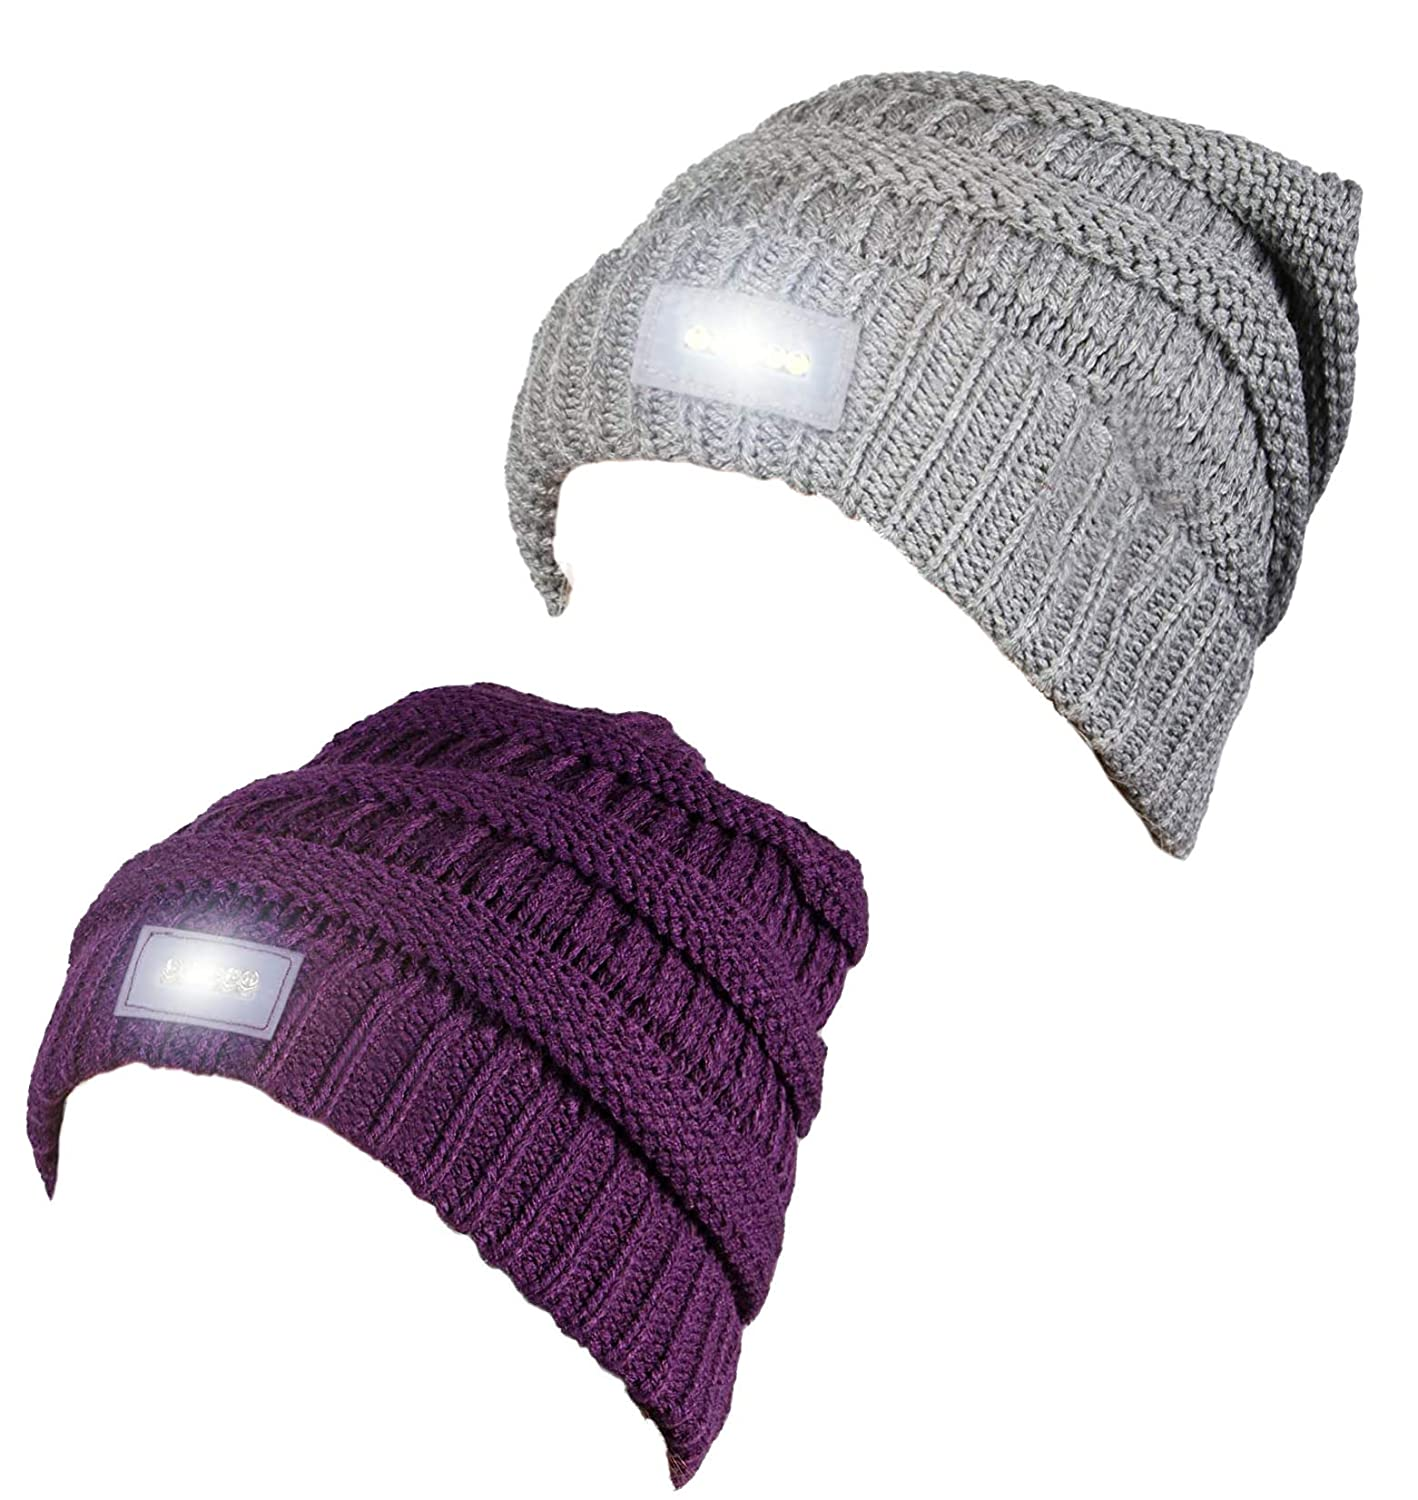 e476b935e7e H-6007-2-6674 Day Night Beanie Bundle - 1 Dove Grey